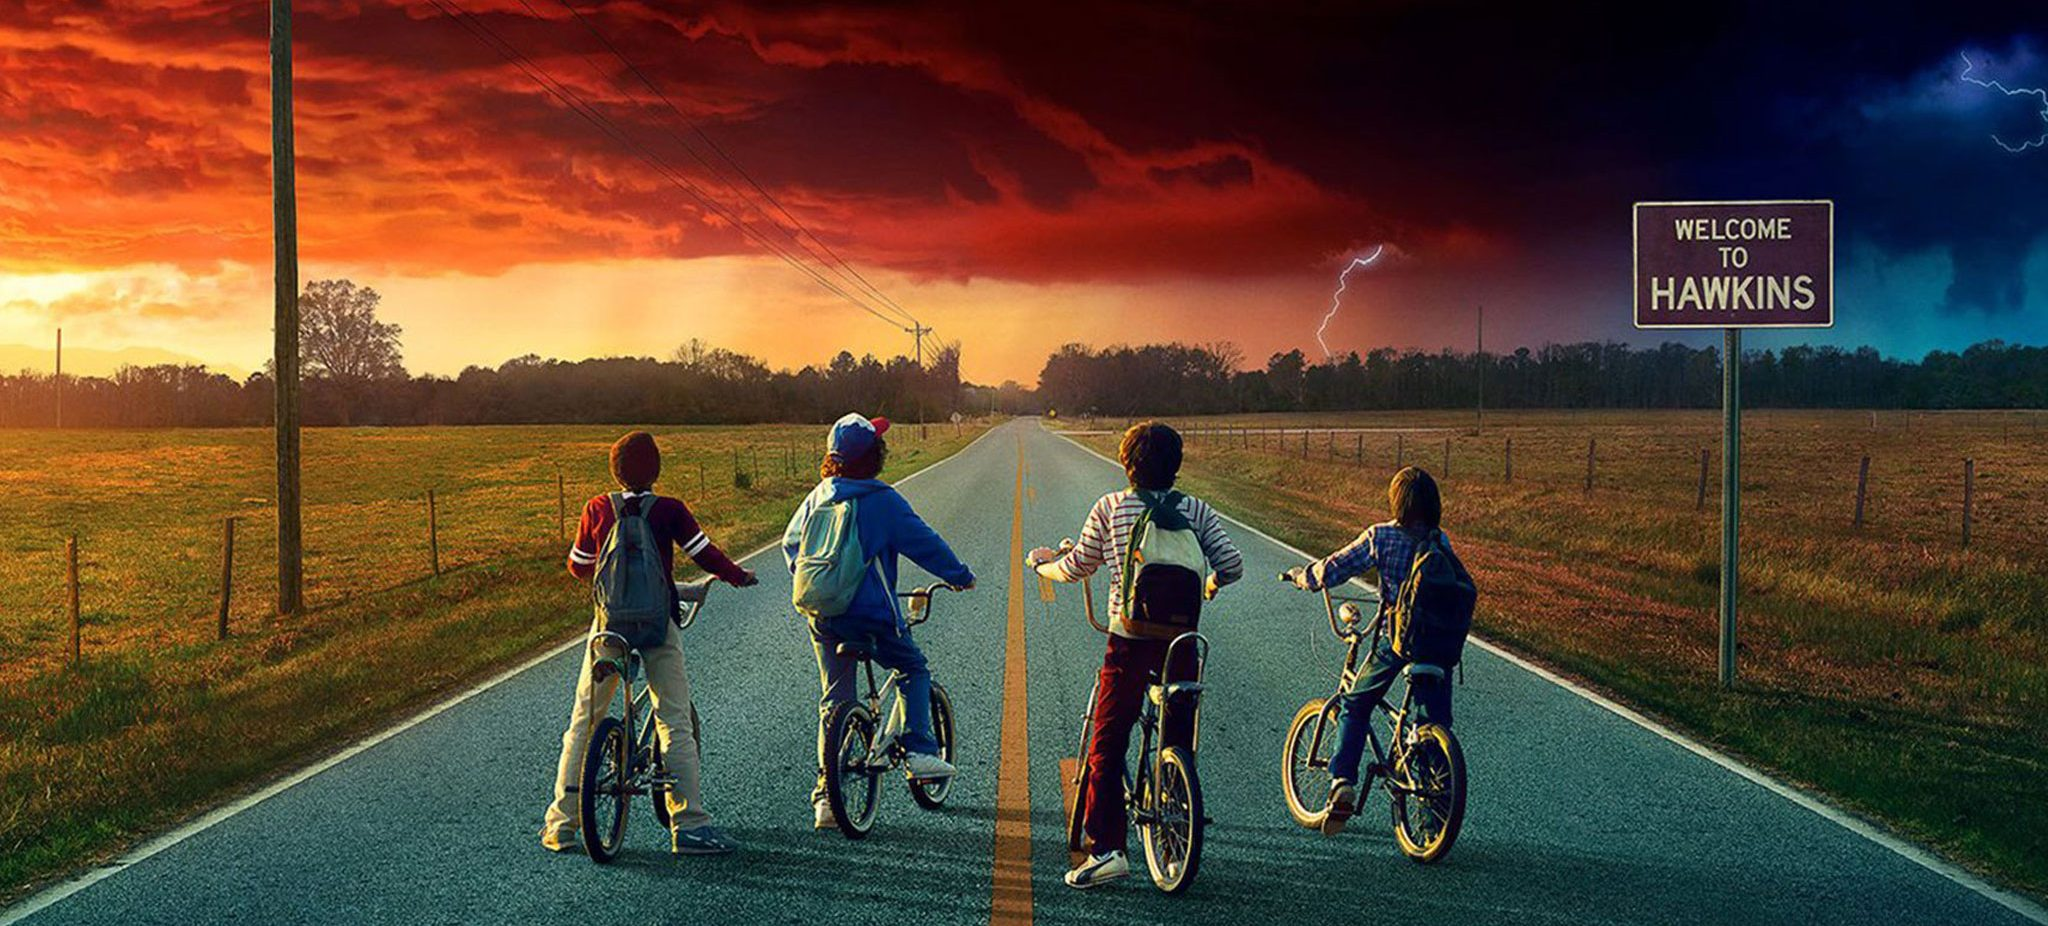 The 5 Best Moments of Stranger Things 2